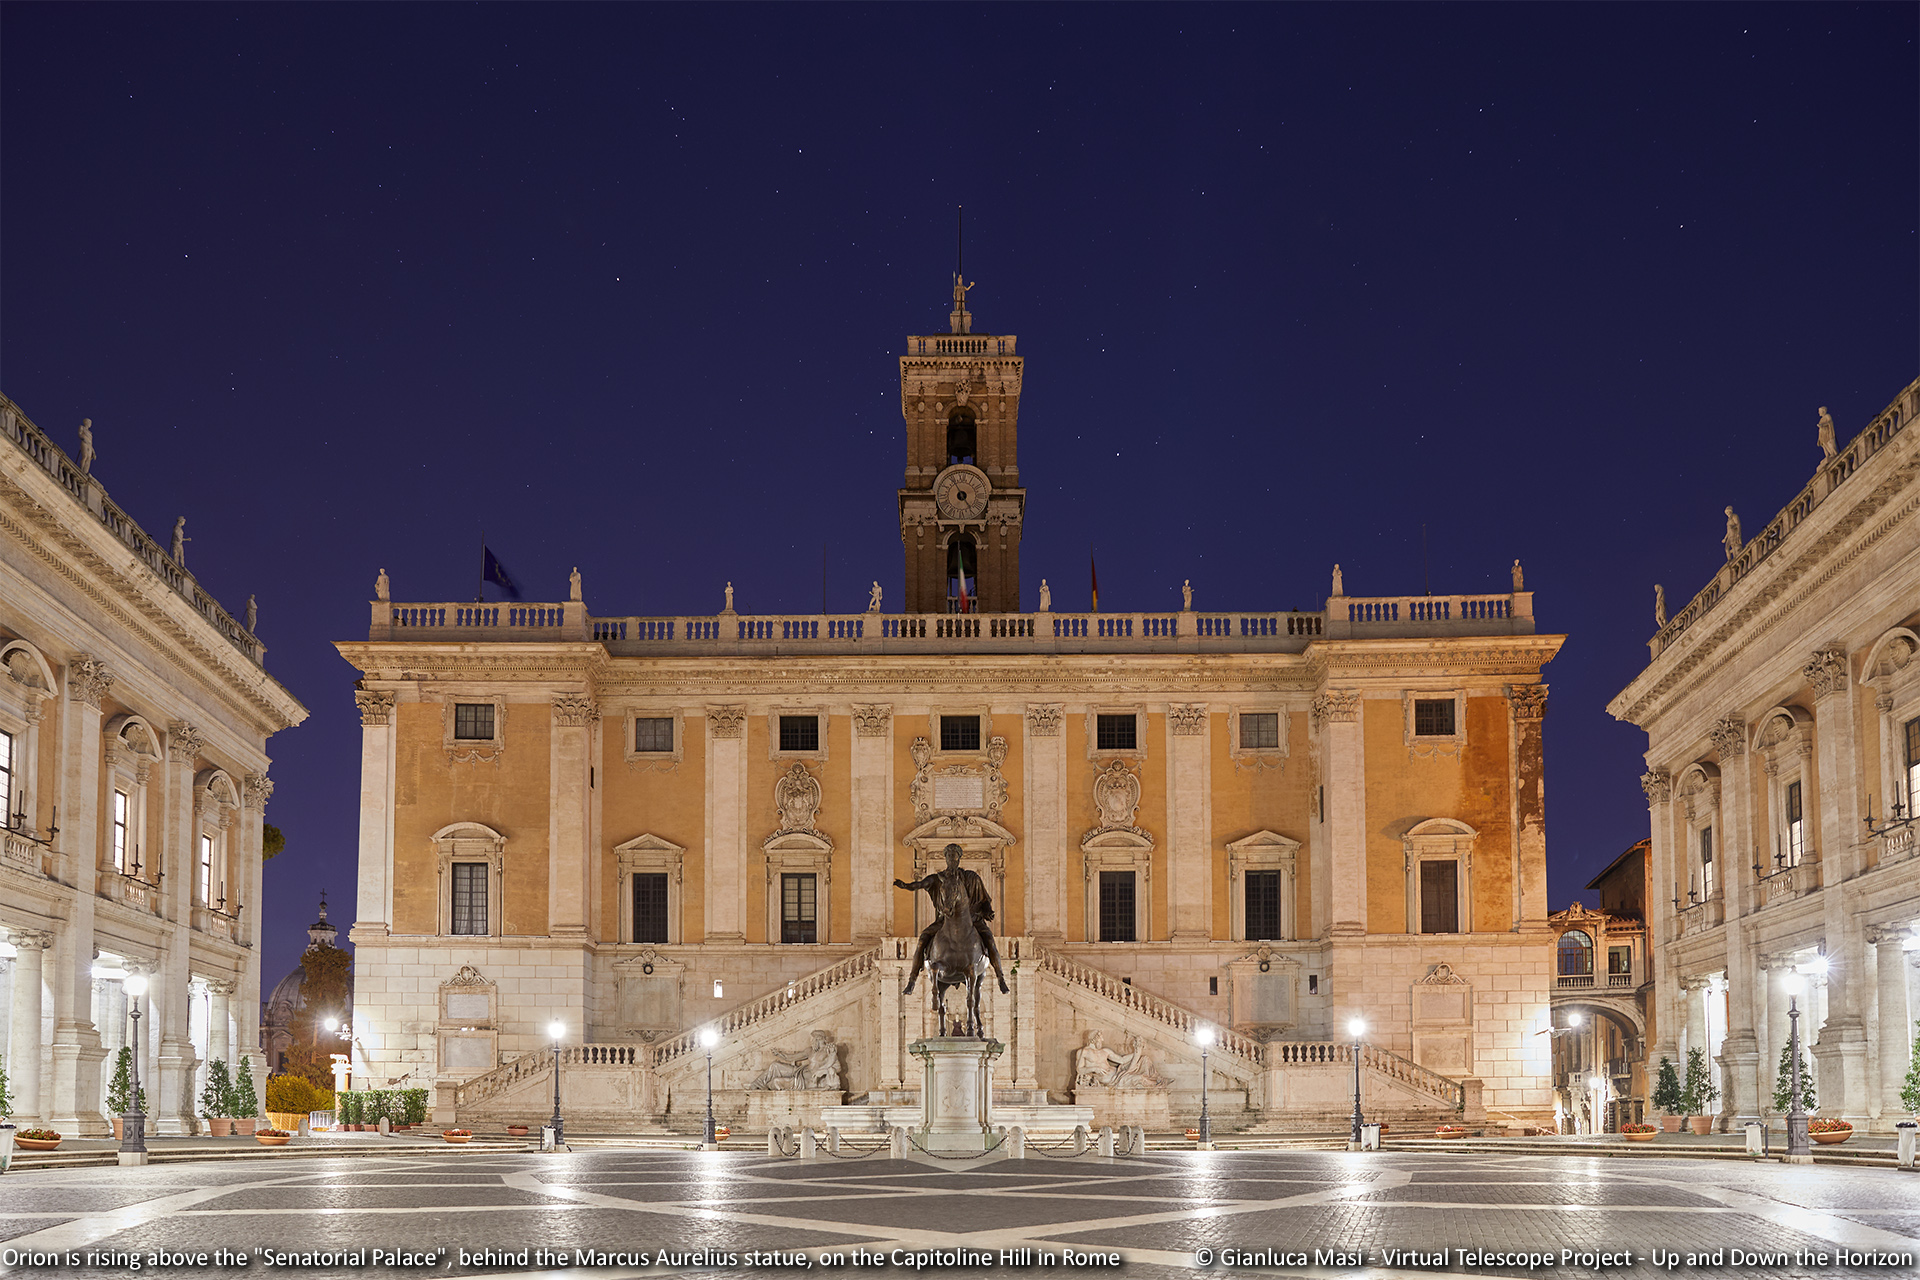 Orion is rising above the Senatorial Palace, behind the Marcus Aurelius statue. Capitoline Hill, Rome.